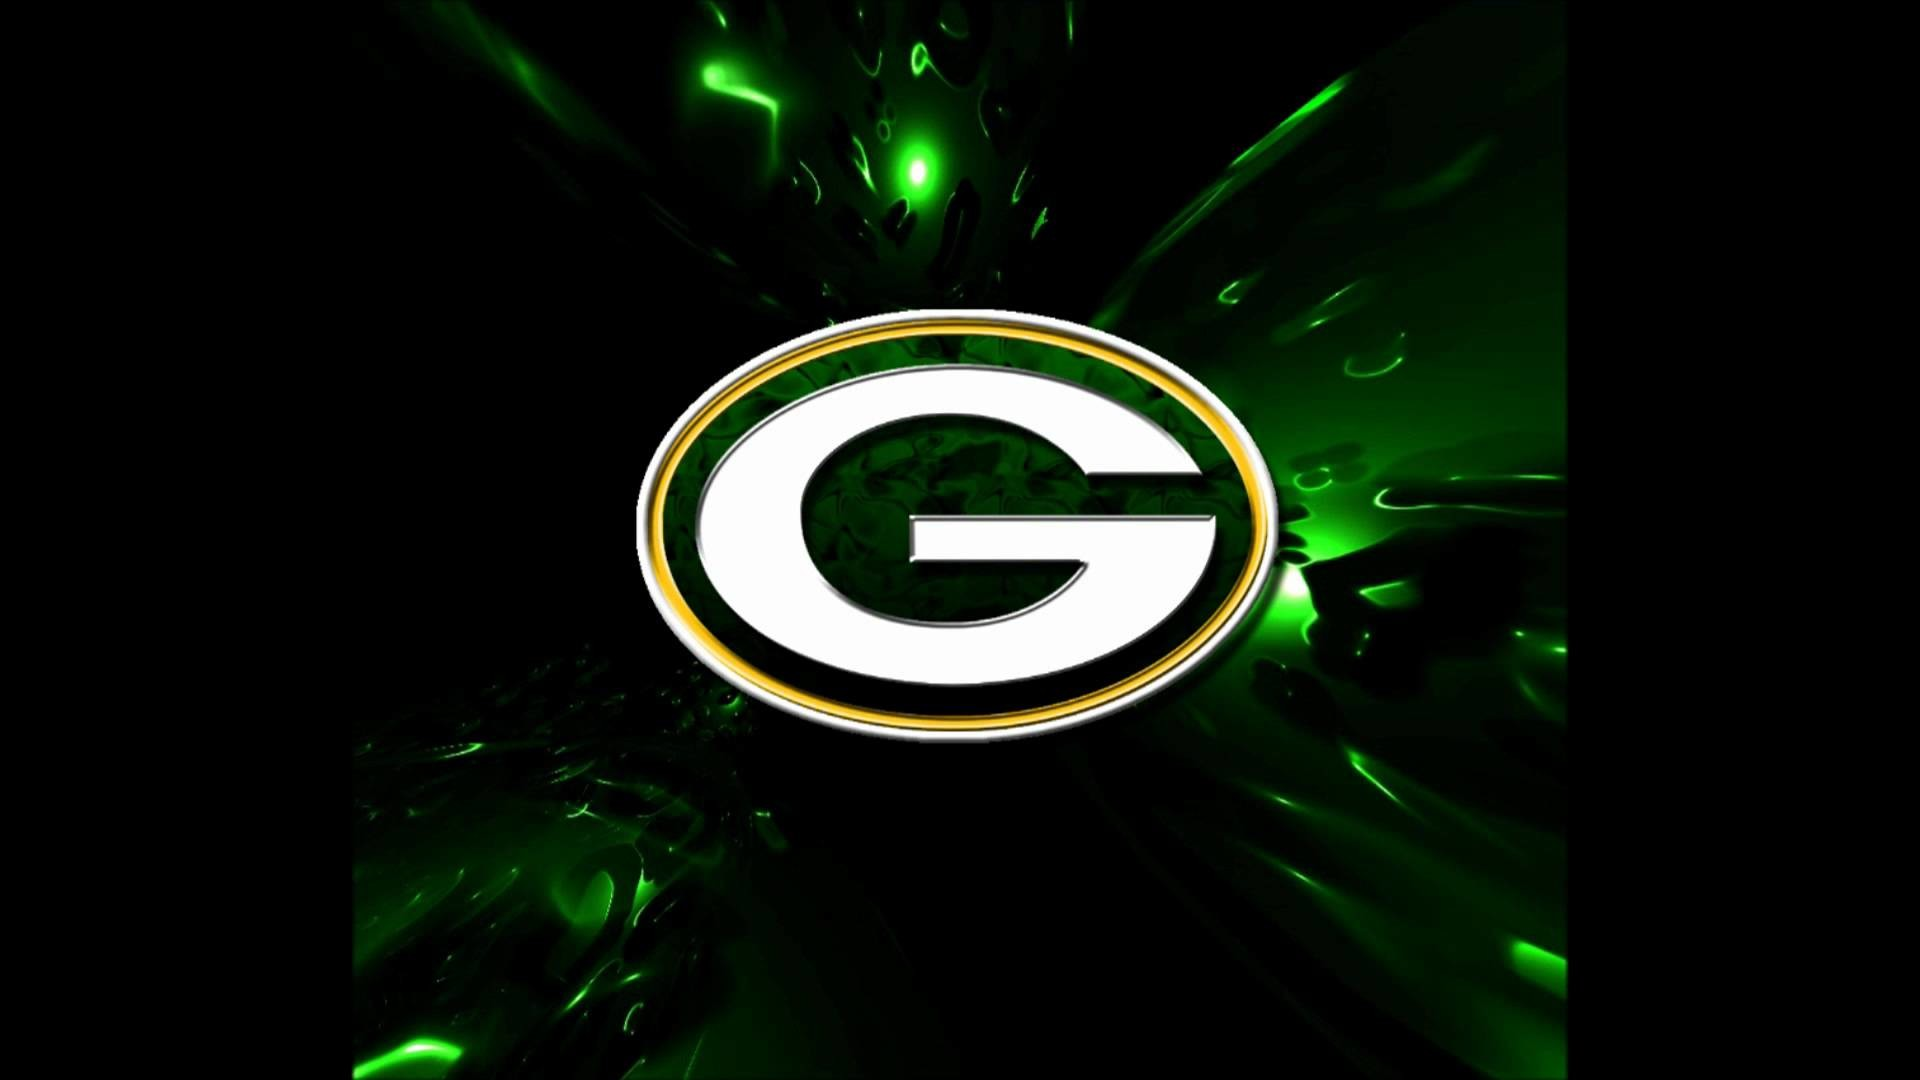 Houston Texans Iphone Wallpaper Green Bay Packers Wallpaper Graphic 68 Images